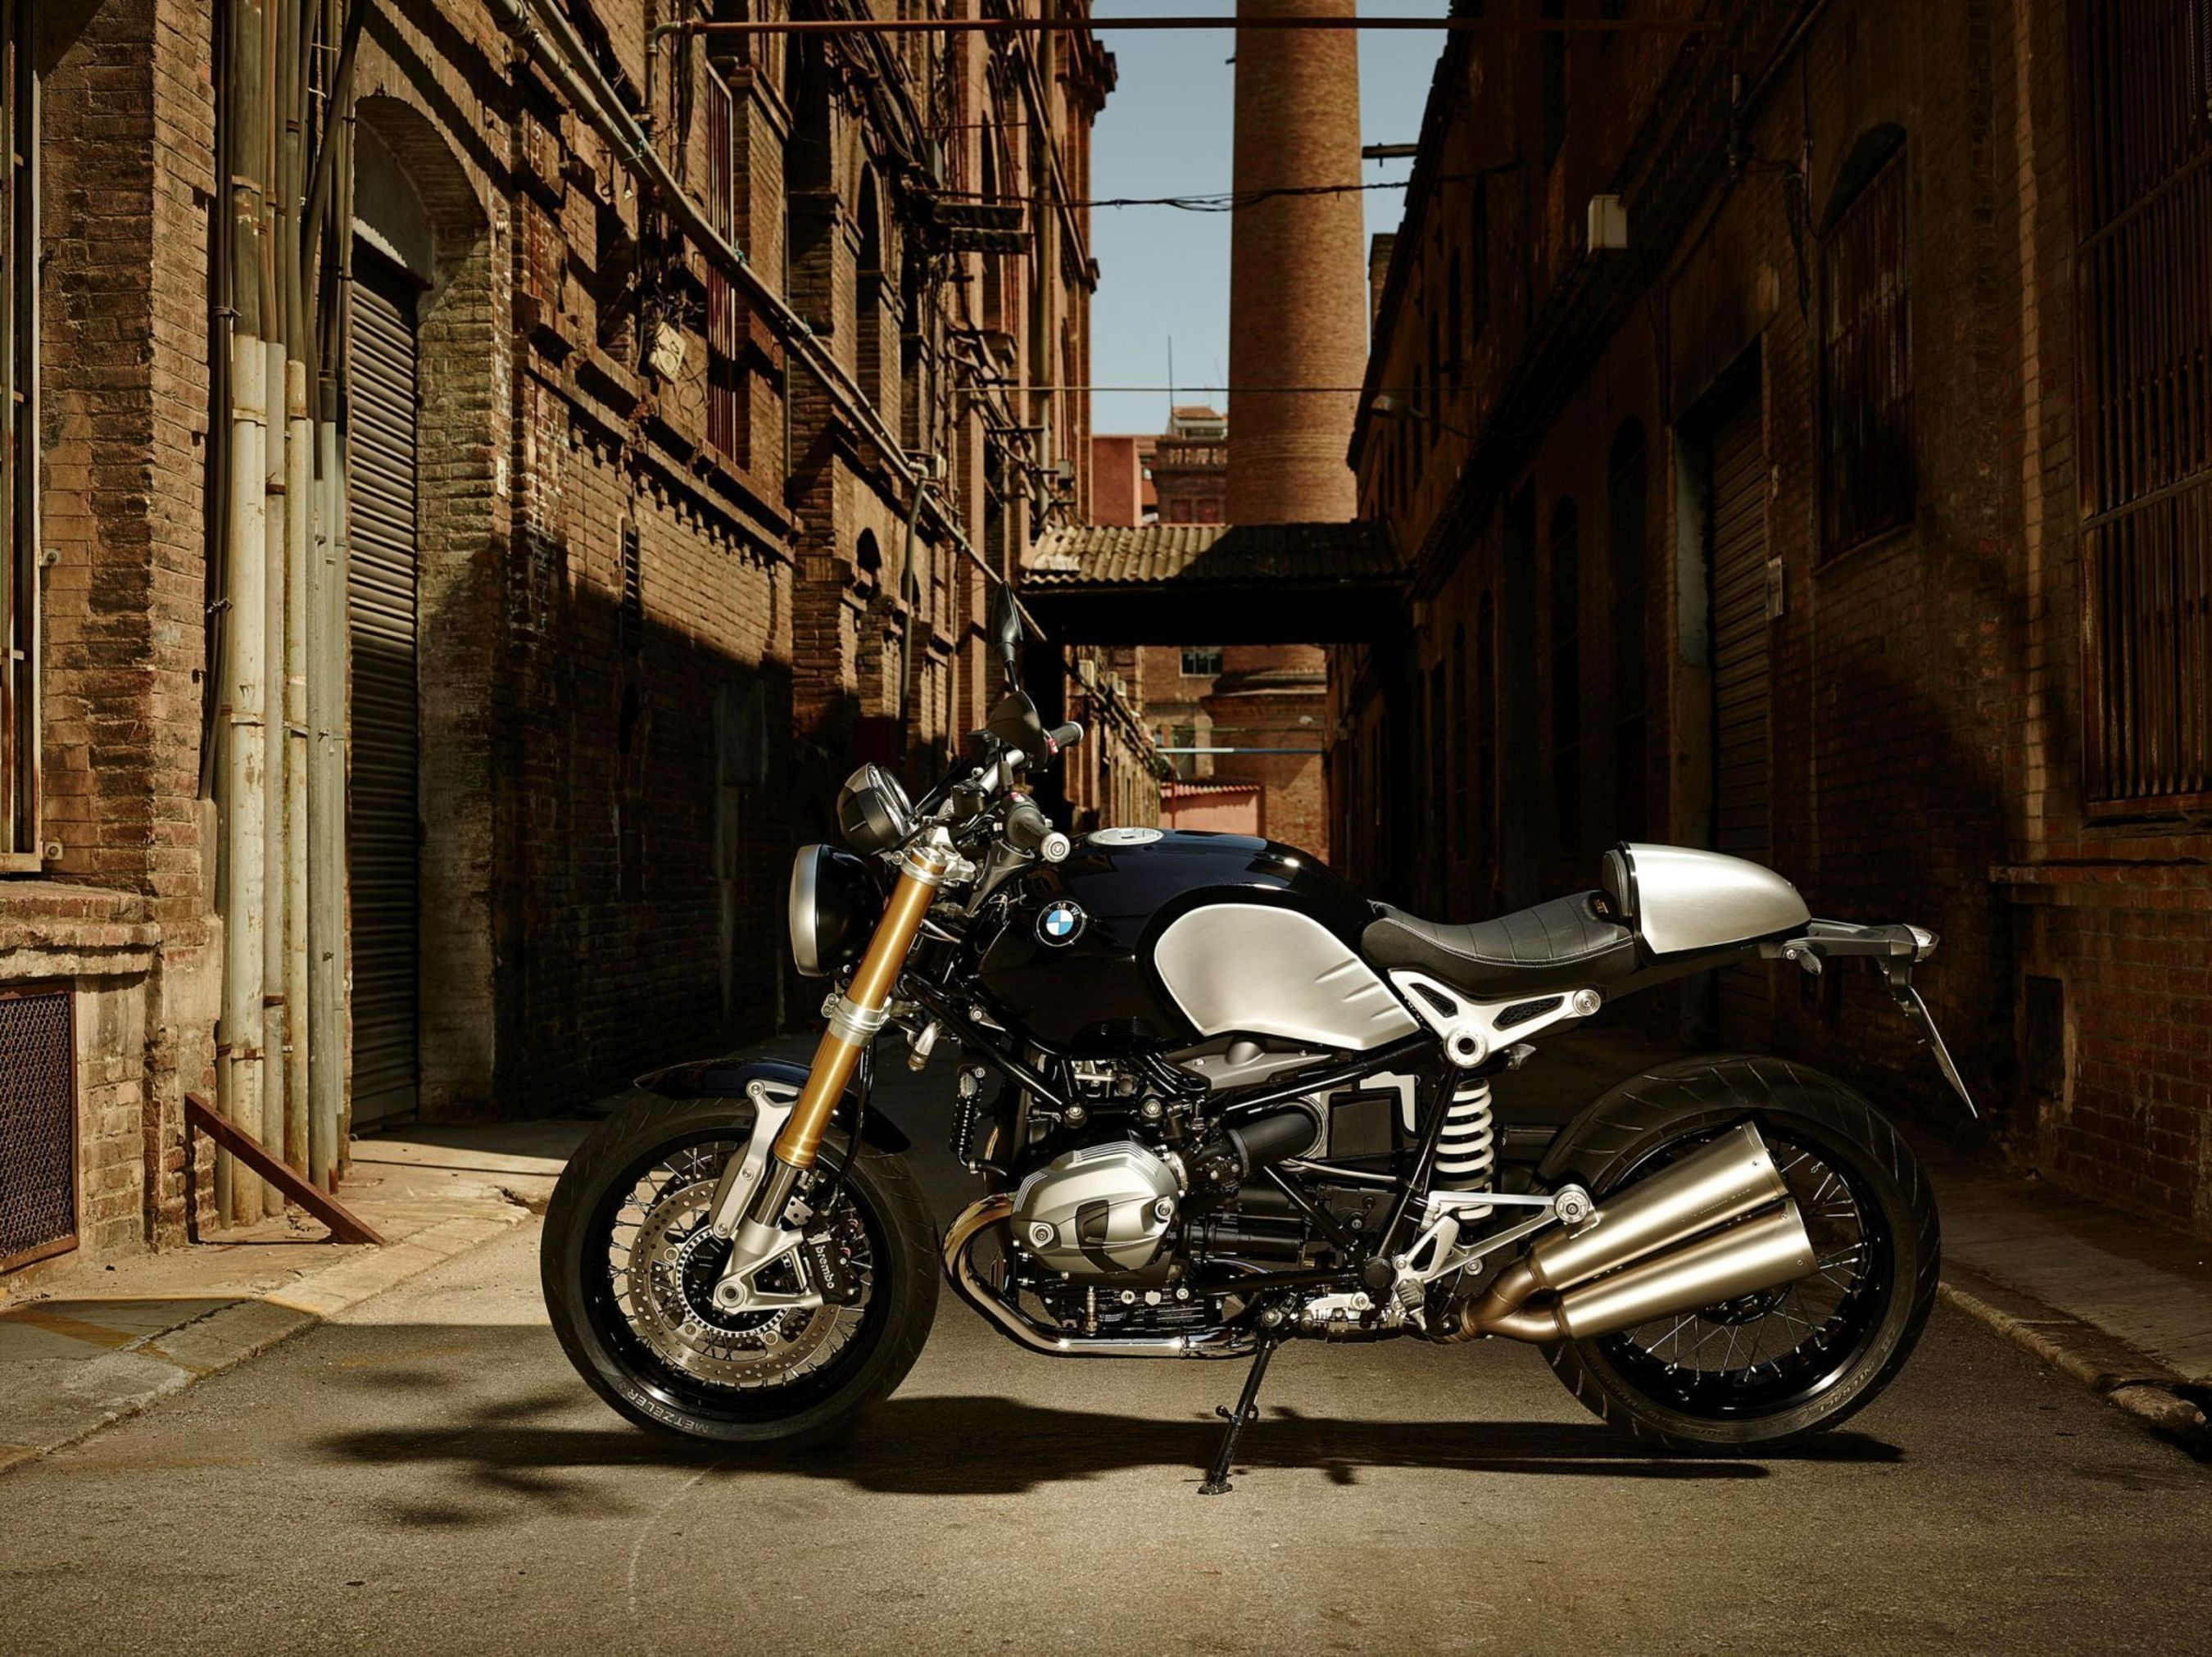 BMW R nineT. BMW Motorrad sold more vehicles in 2014 than in the year before, achieving a record sales figure for the fourth time in a row. (PRNewsFoto/BMW Group)